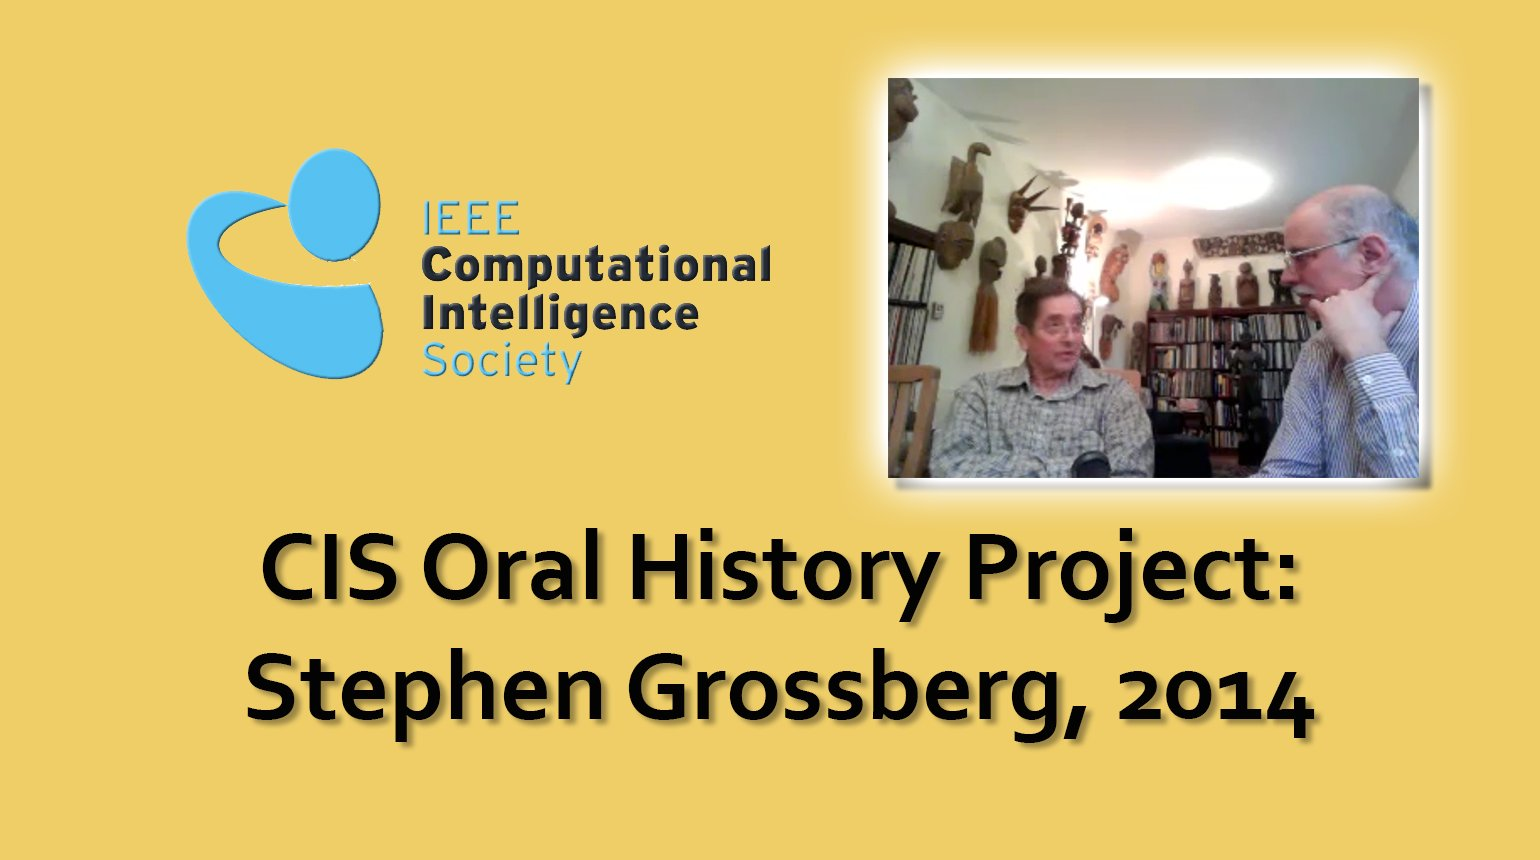 Interview with Stephen Grossberg, 2014: CIS Oral History Project